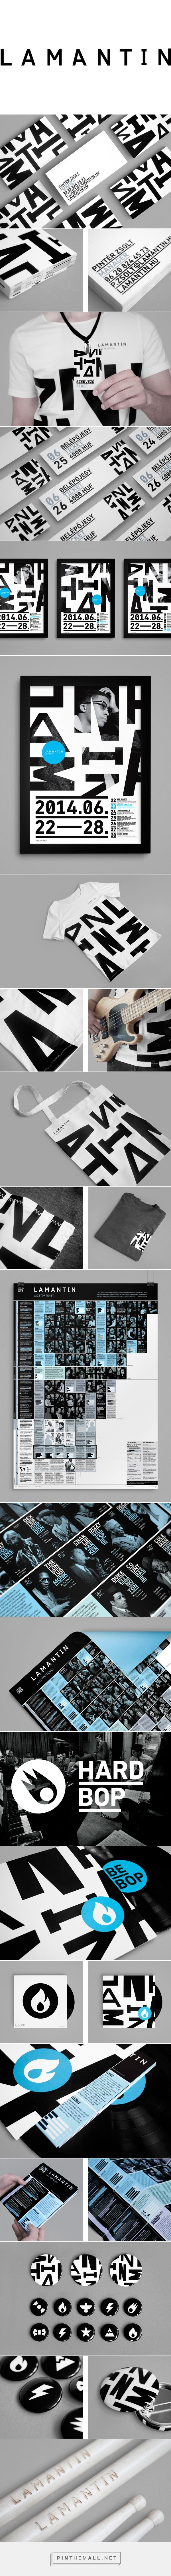 Lamantin Jazz Festival Branding by Hidden Characters | Fivestar Branding Agency – Design and Branding Agency & Curated Inspiration Gallery